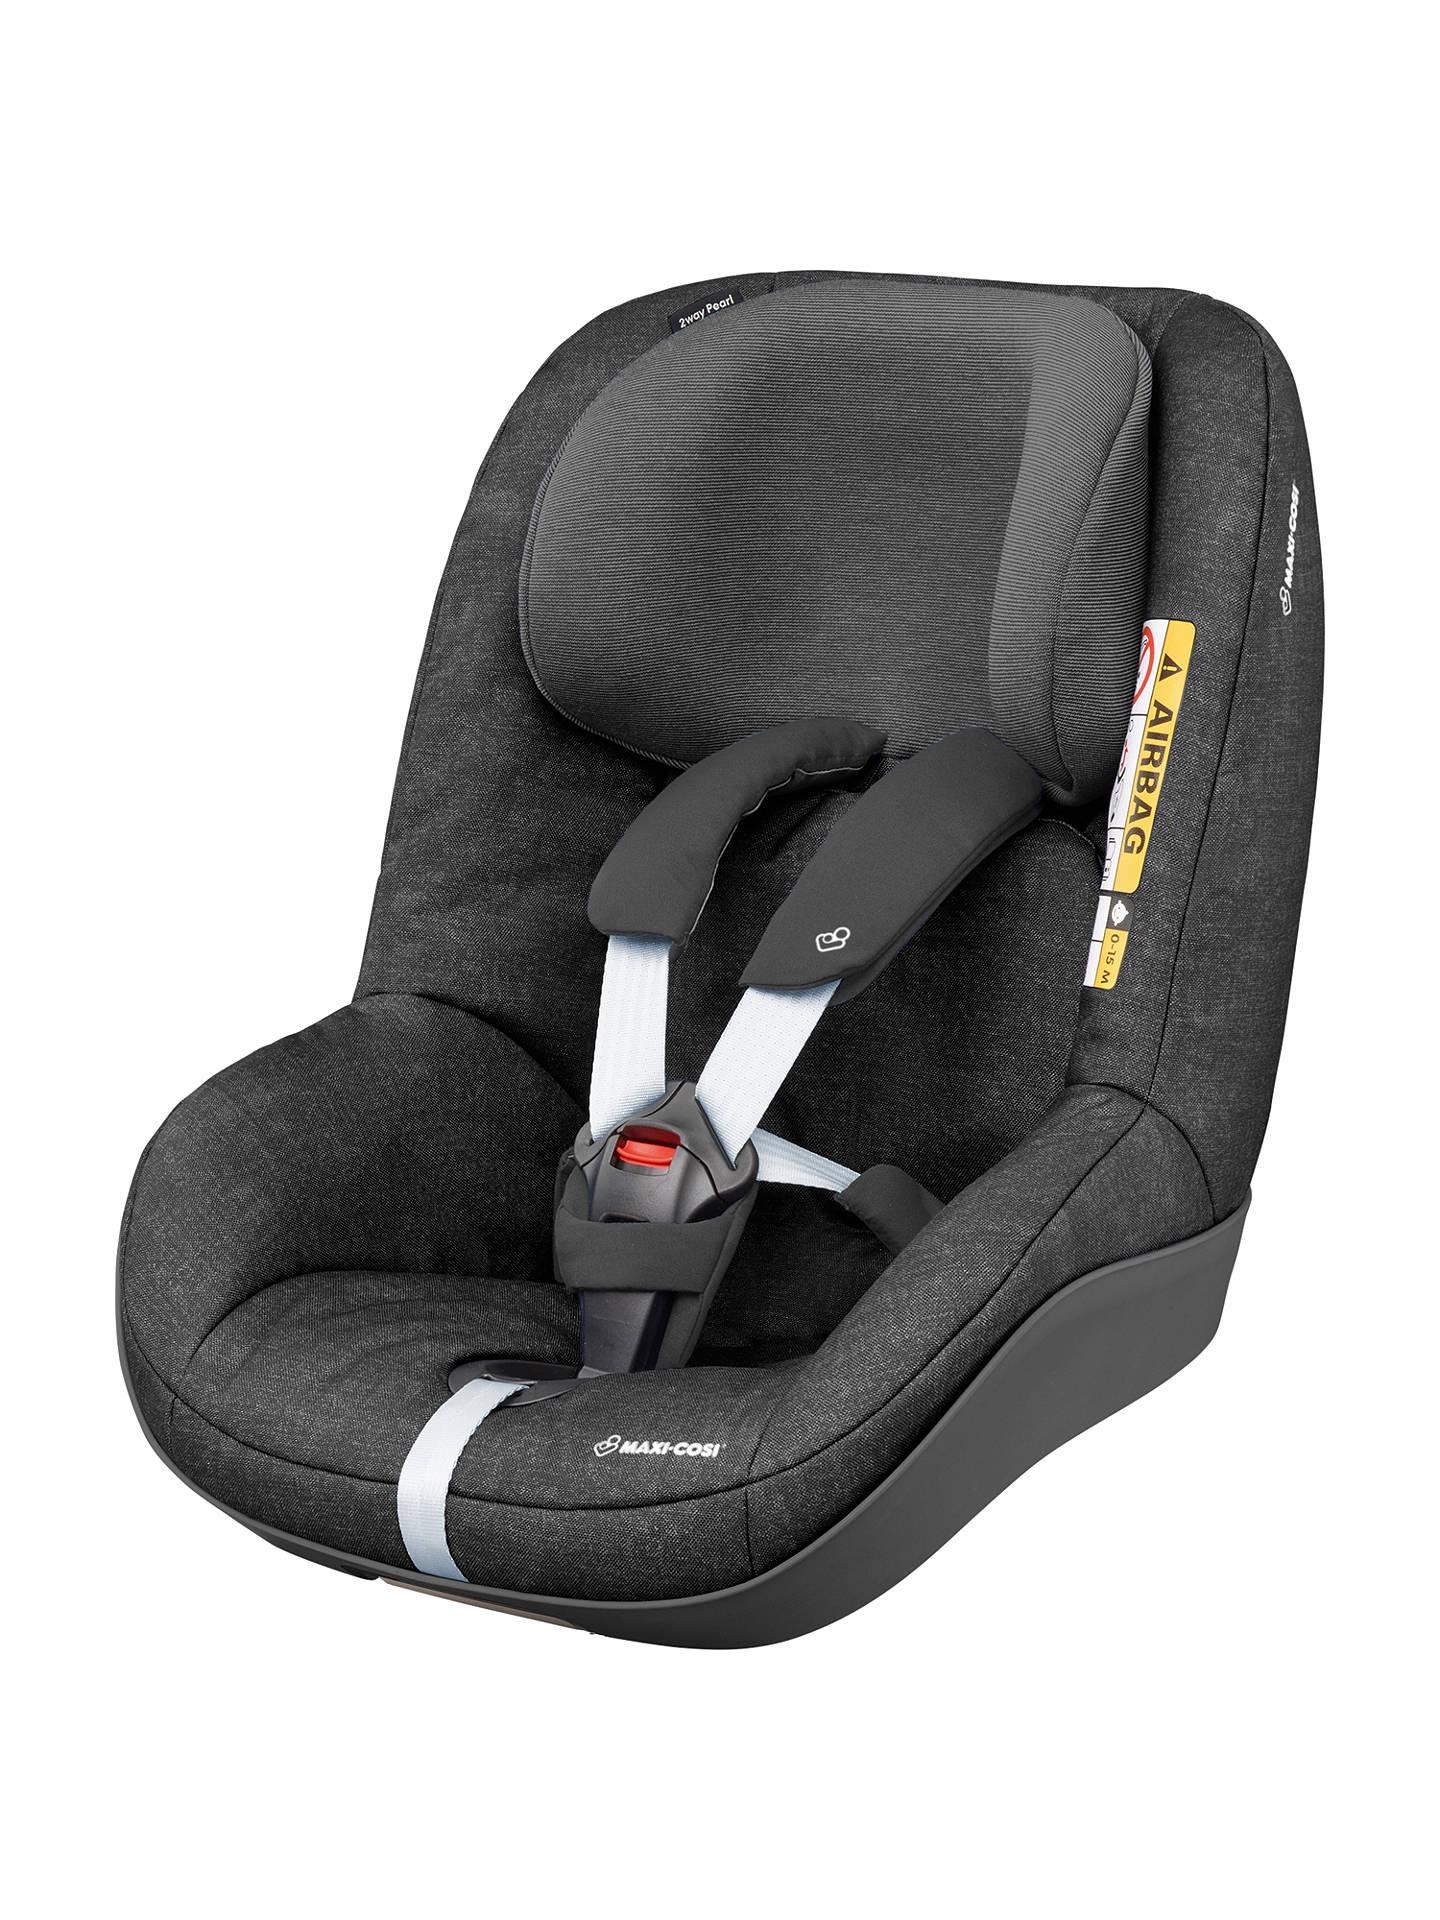 maxi cosi 2waypearl i size group 1 car seat nomad black. Black Bedroom Furniture Sets. Home Design Ideas